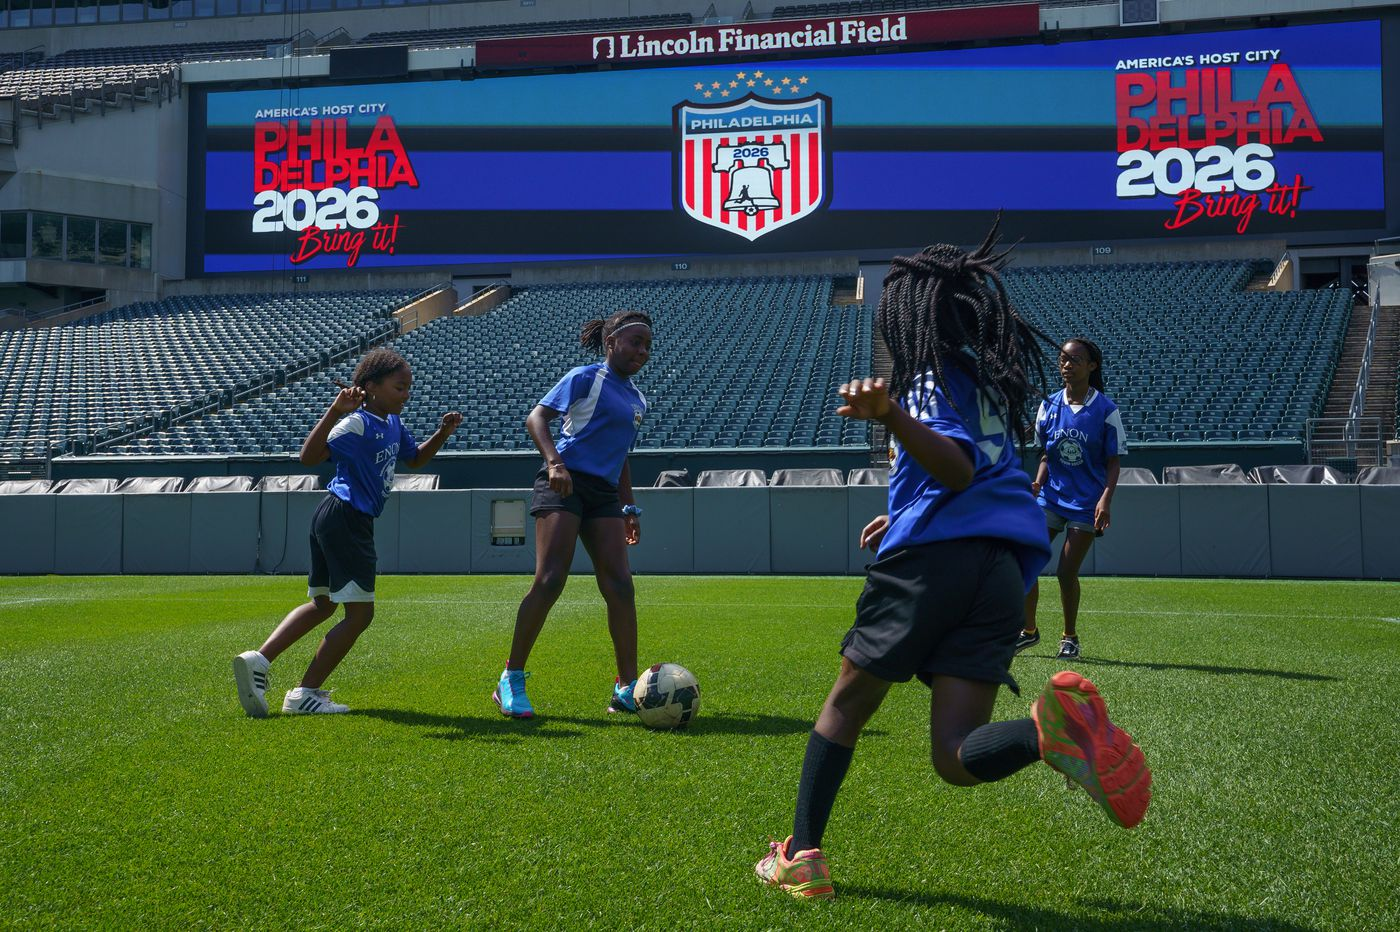 2026 World Cup host city picks likely to be delayed due to coronavirus' impact